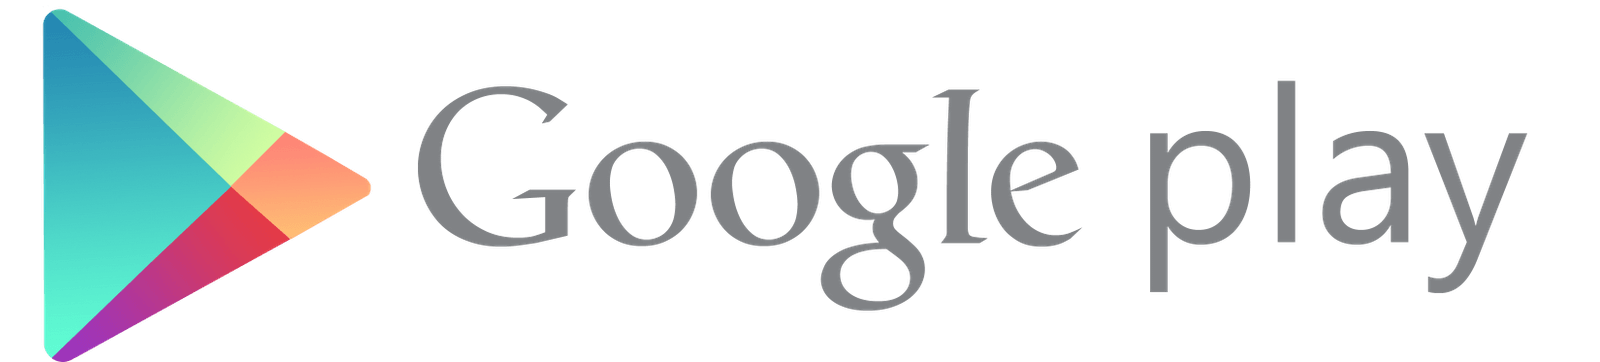 Google Play logo 3300x746 transparent BEACH MASSACRE AT KILL DEVIL HILLS